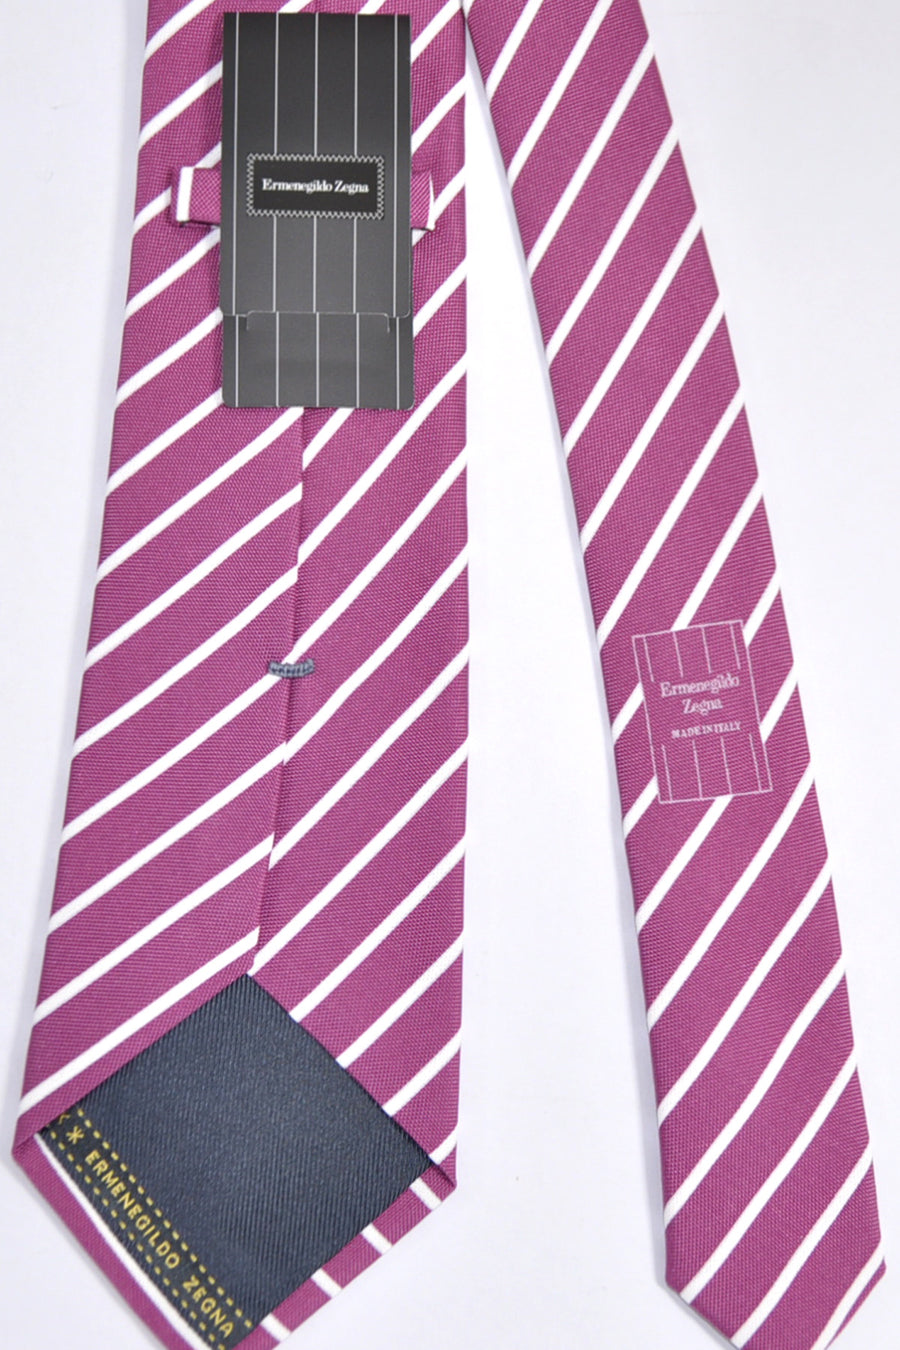 Ermenegildo Zegna Tie Cranberry White Stripes Cotton Silk FINAL SALE